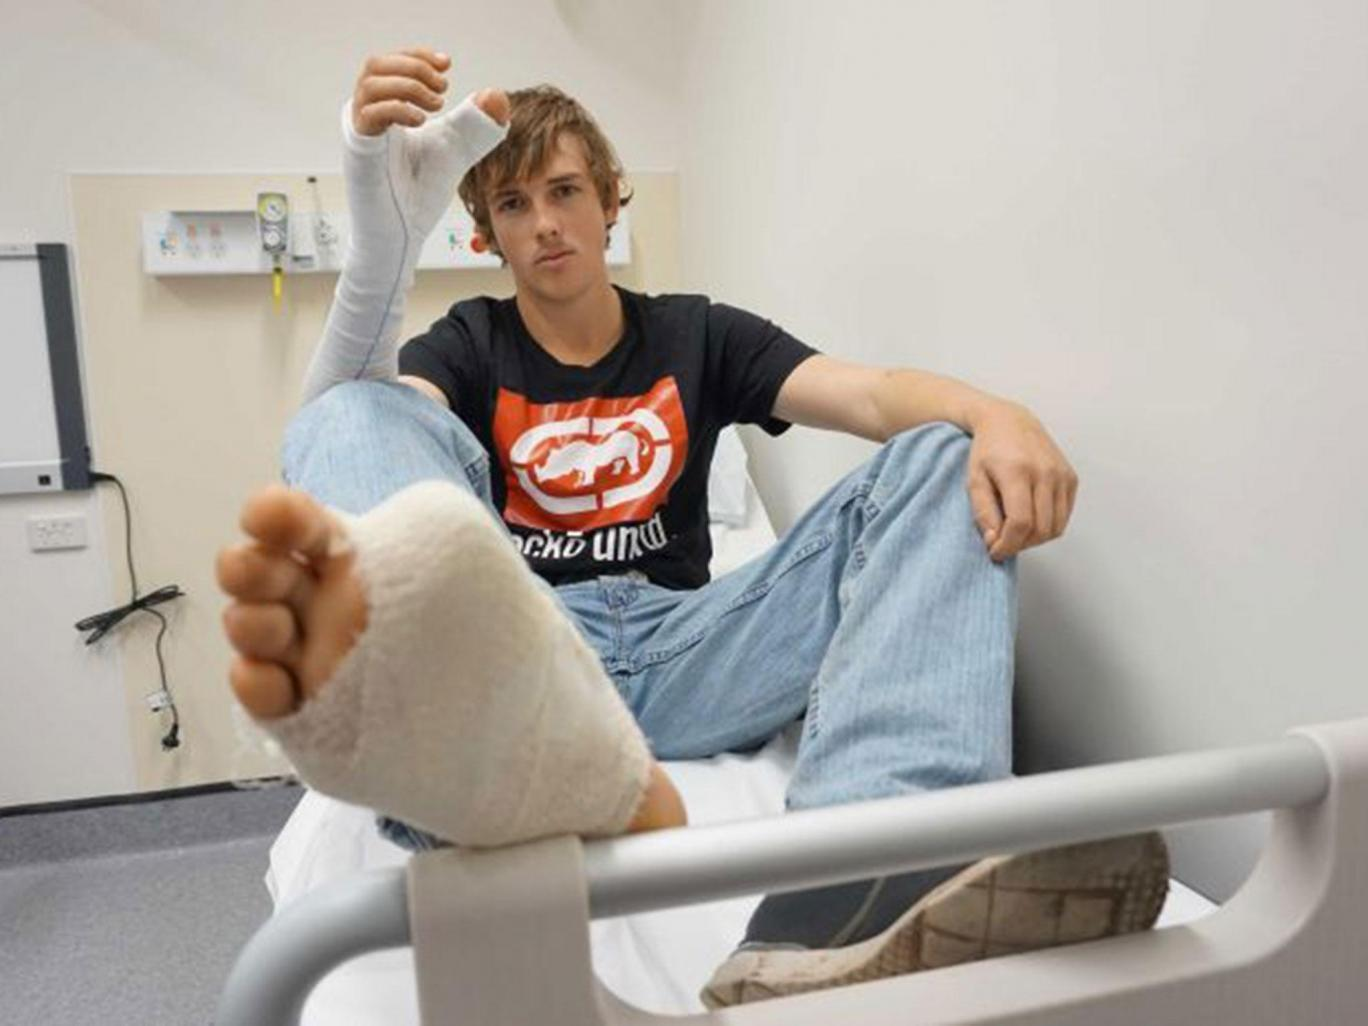 Australian man's thumb surgically replaced by toe